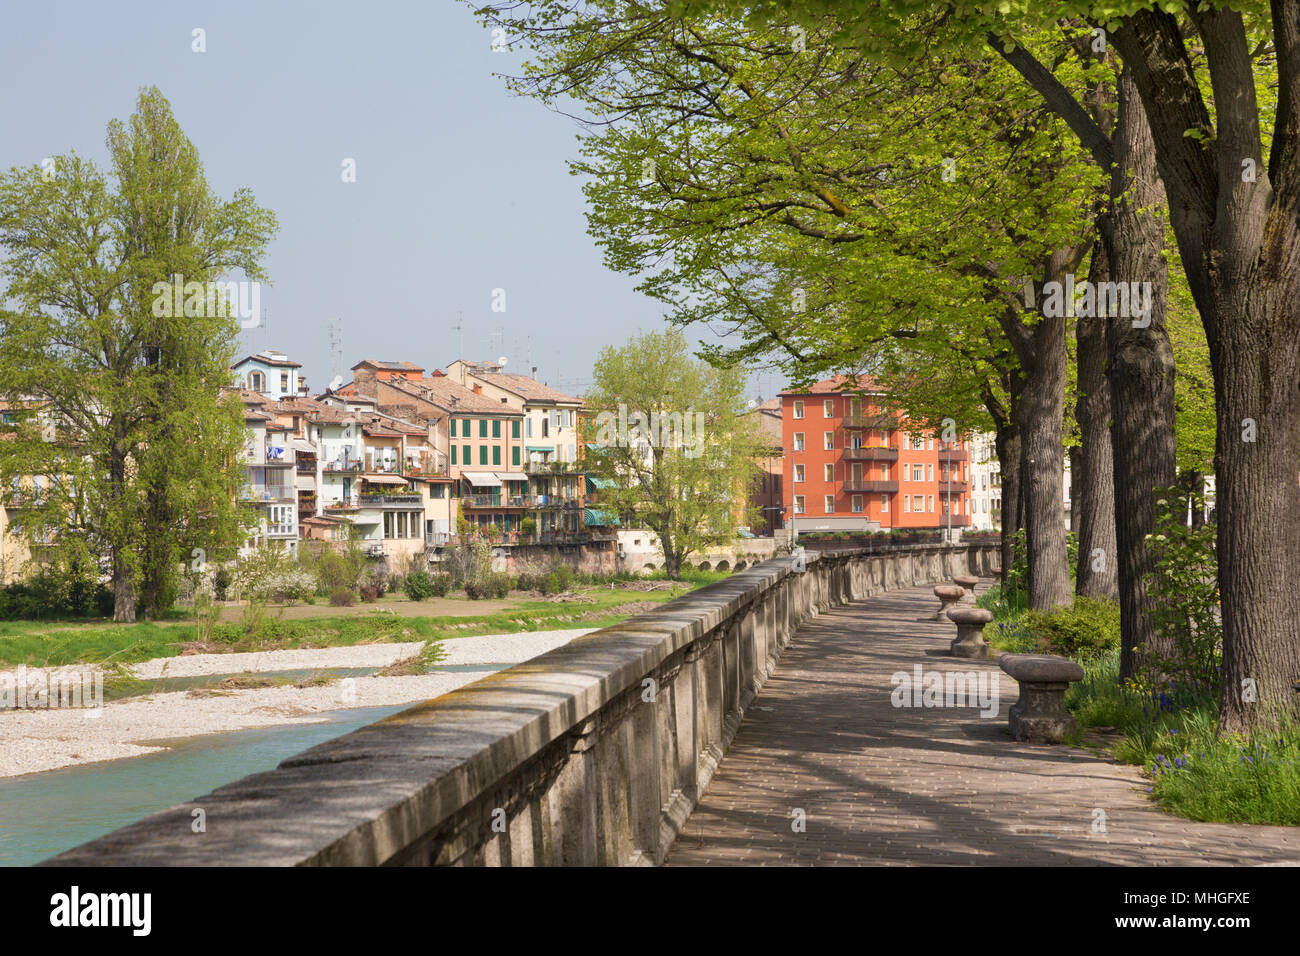 Parma - The Riverside of Parma river. - Stock Image